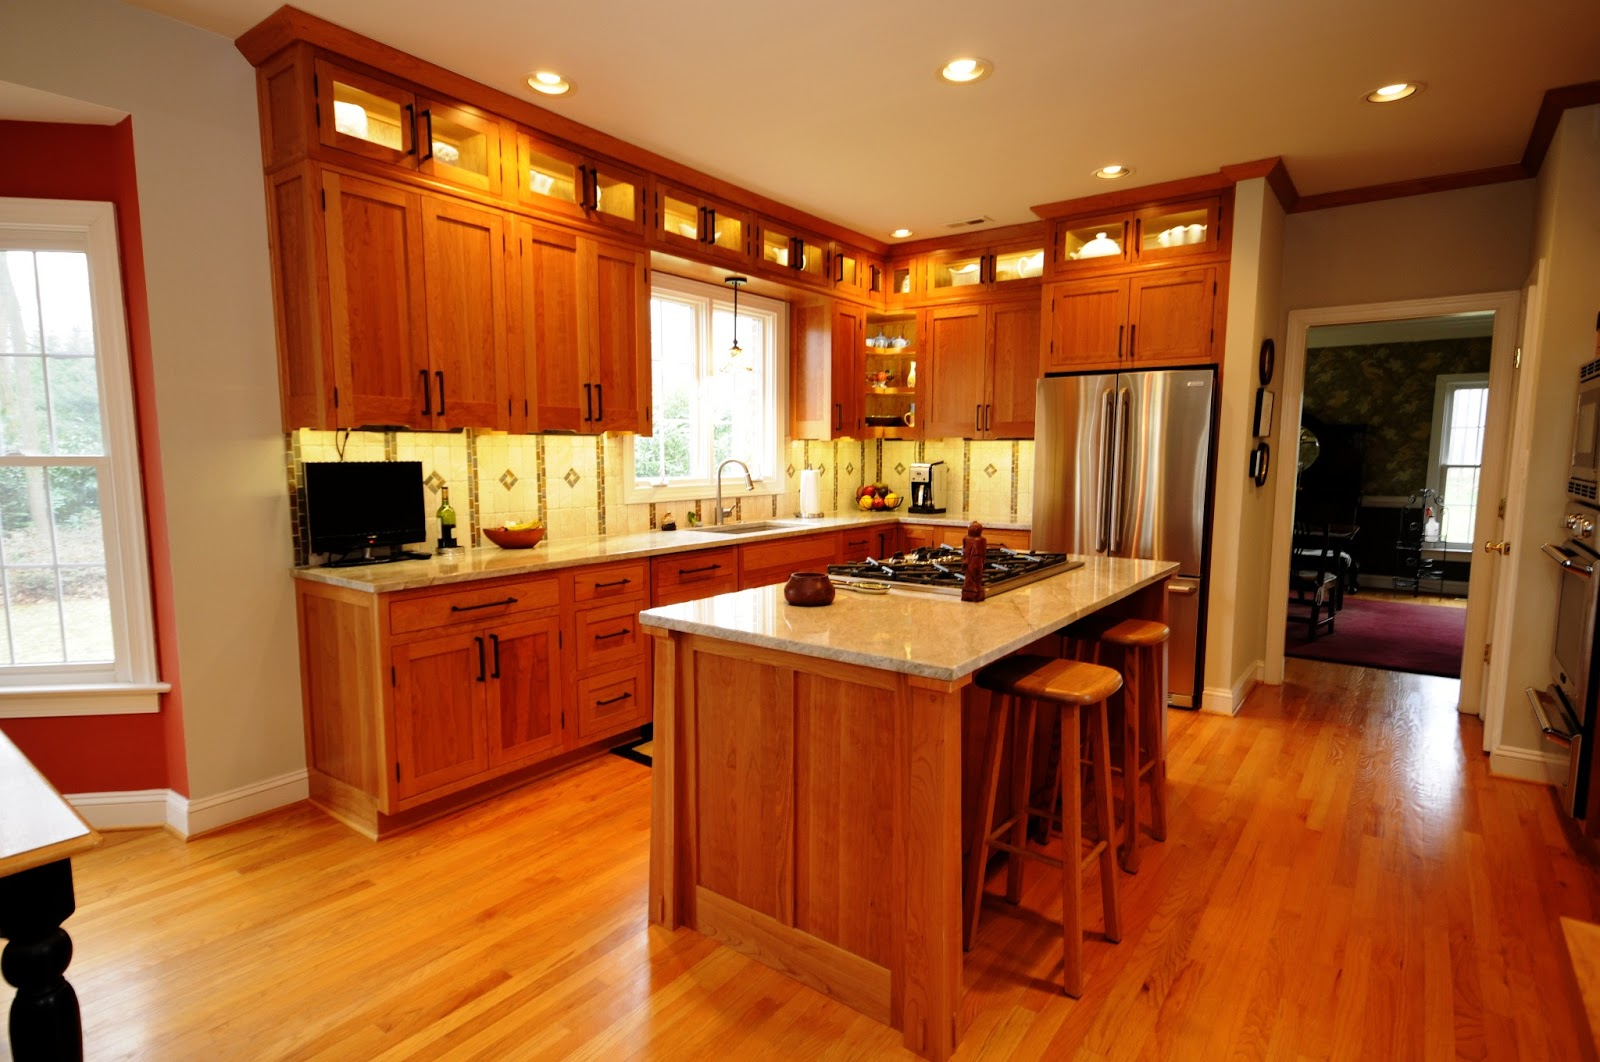 Cherry Hill Cabinetry: Arts & Crafts Kitchen - A Cherry ...